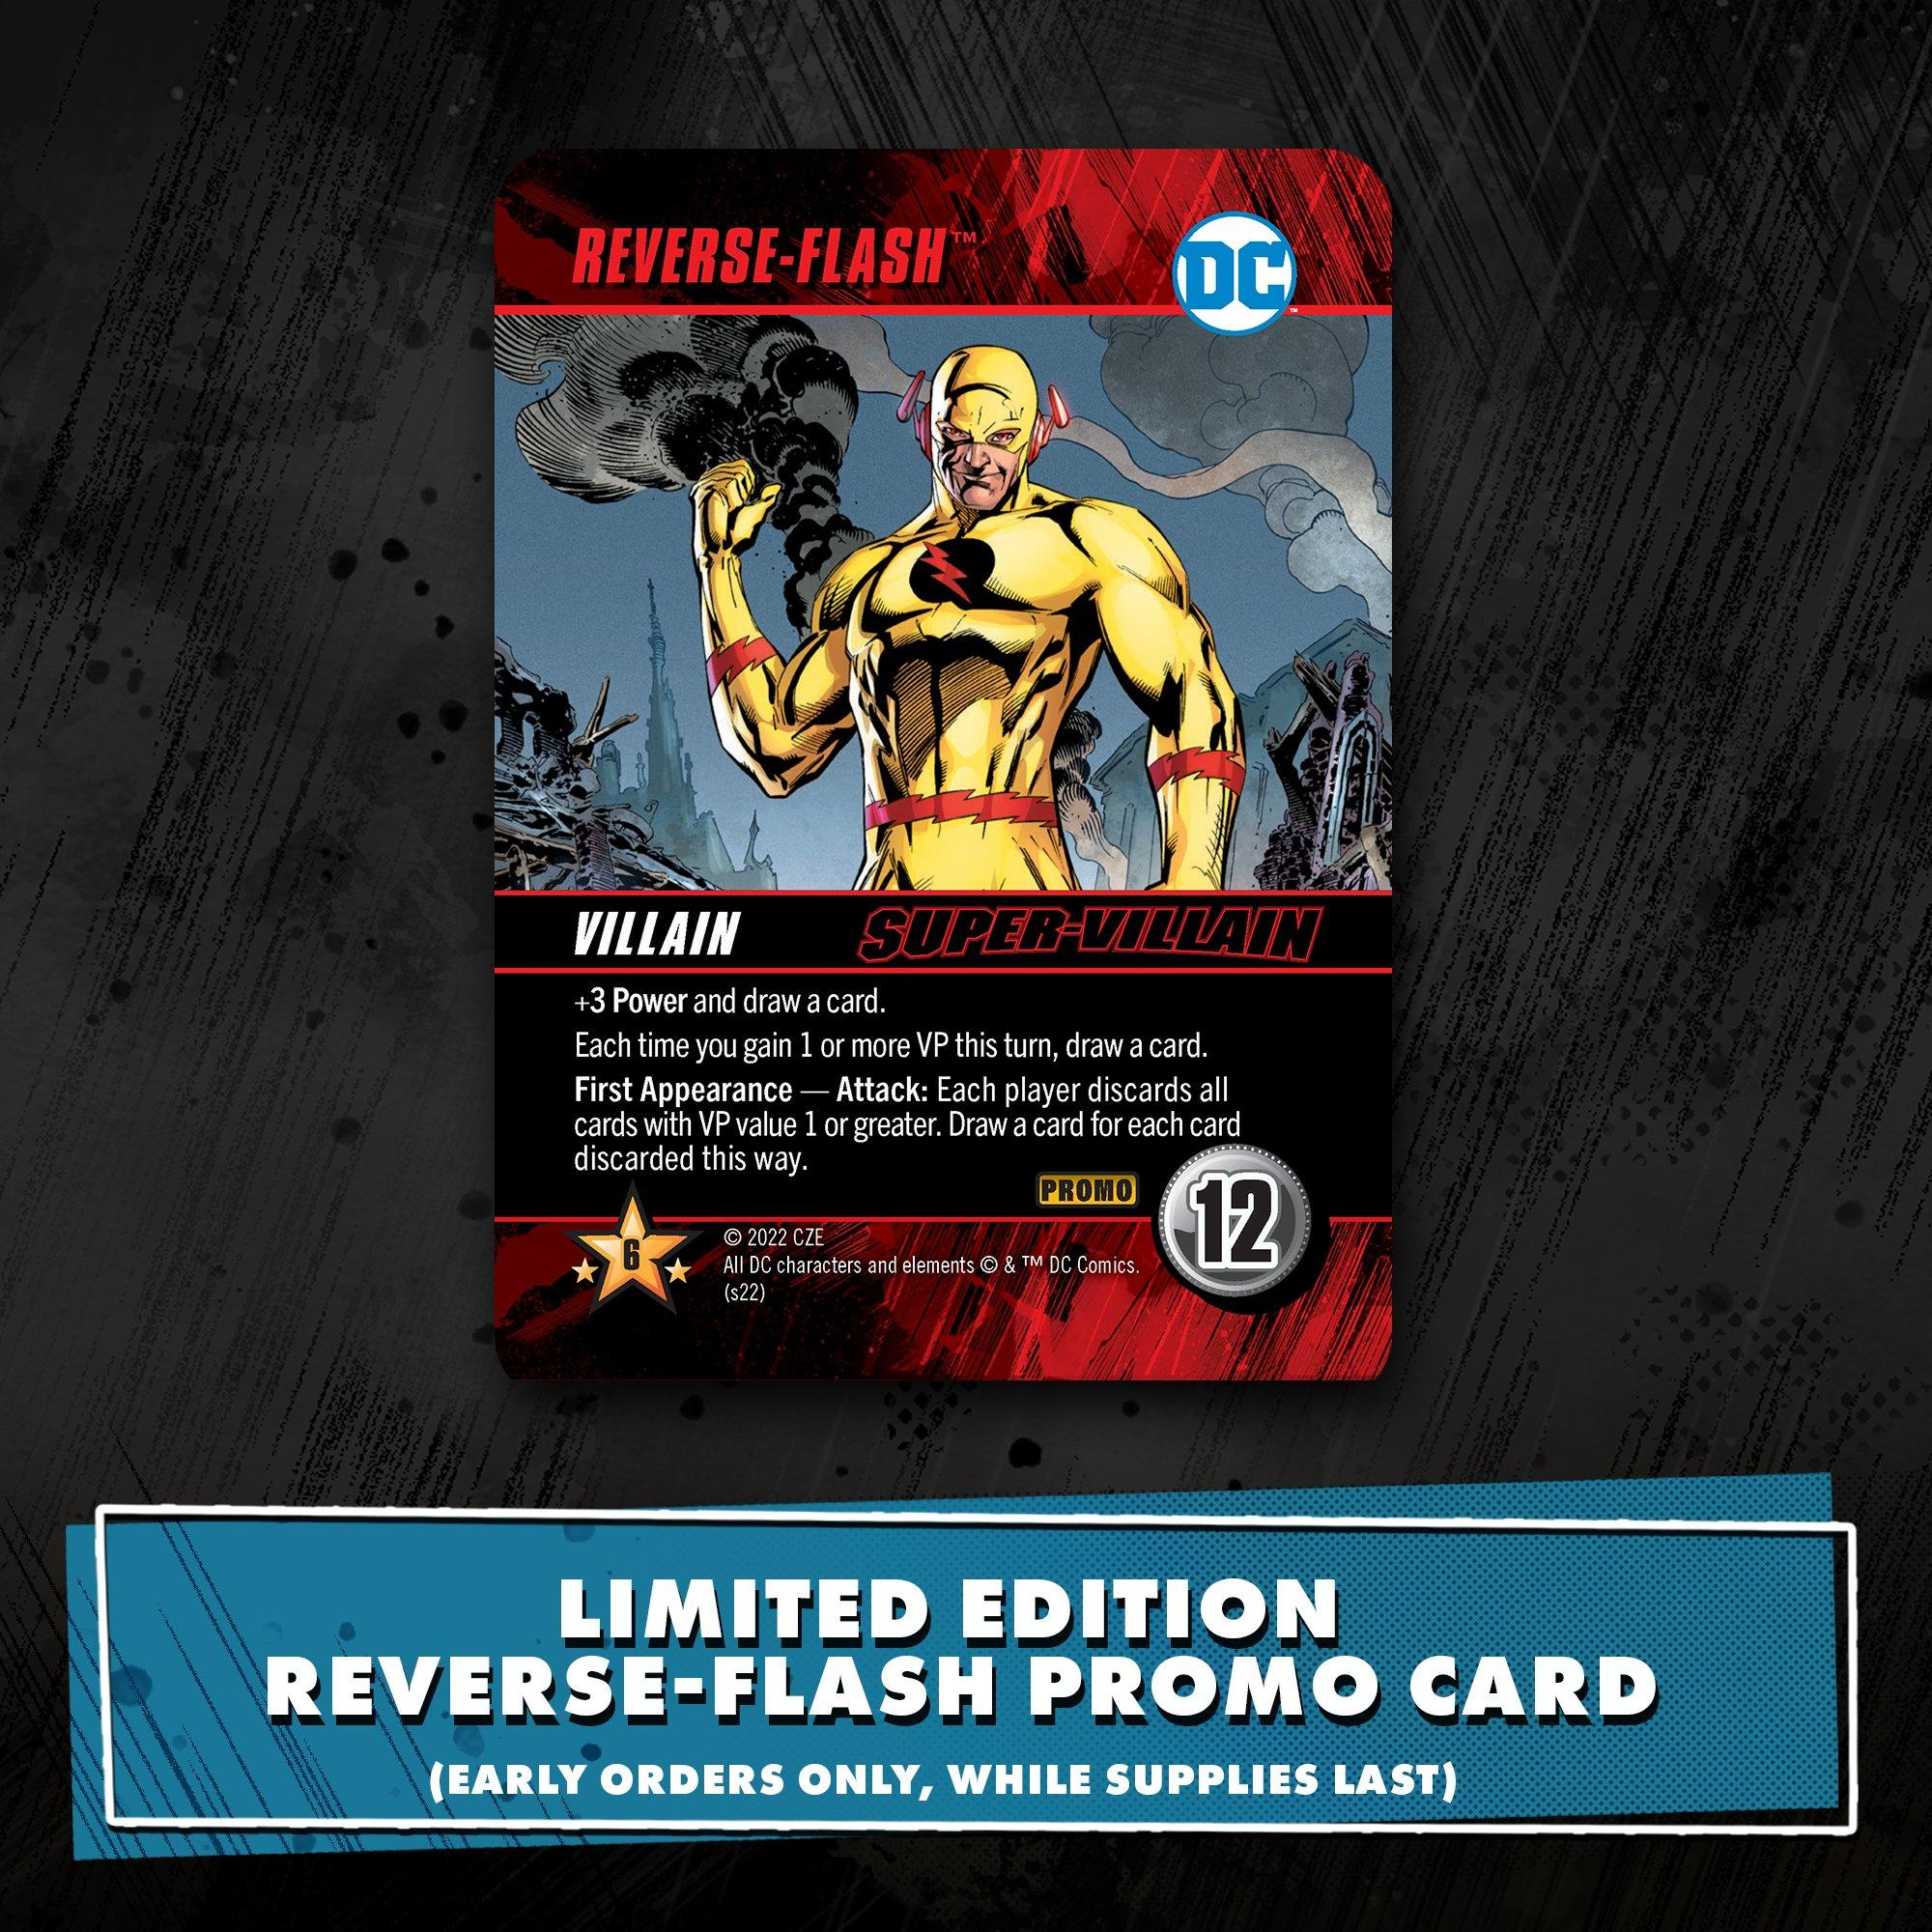 dc-collection-pack-5.jpg